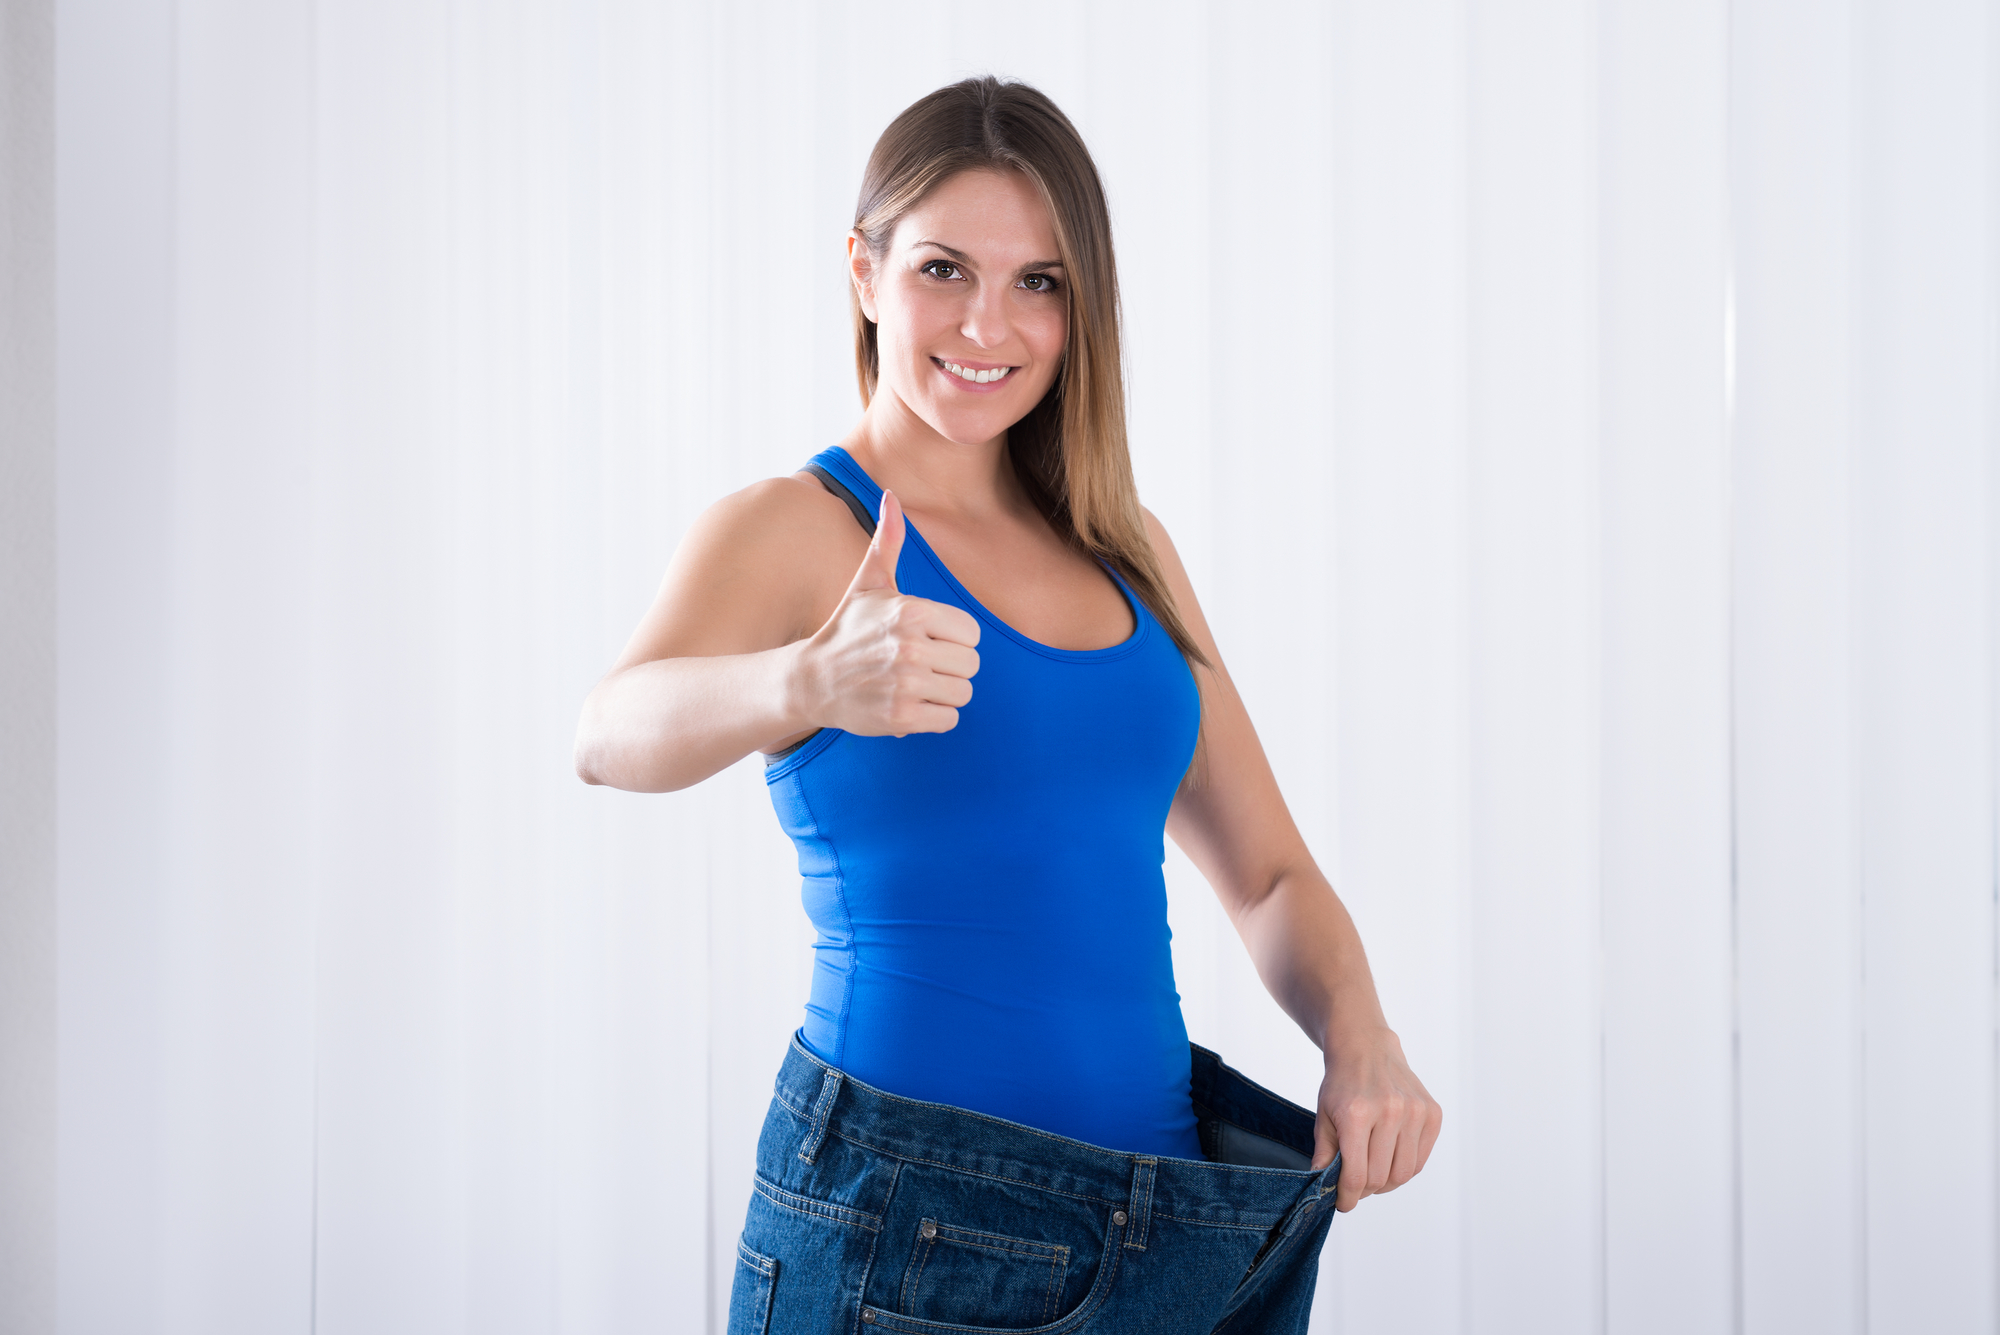 Woman Showing Her Weightloss